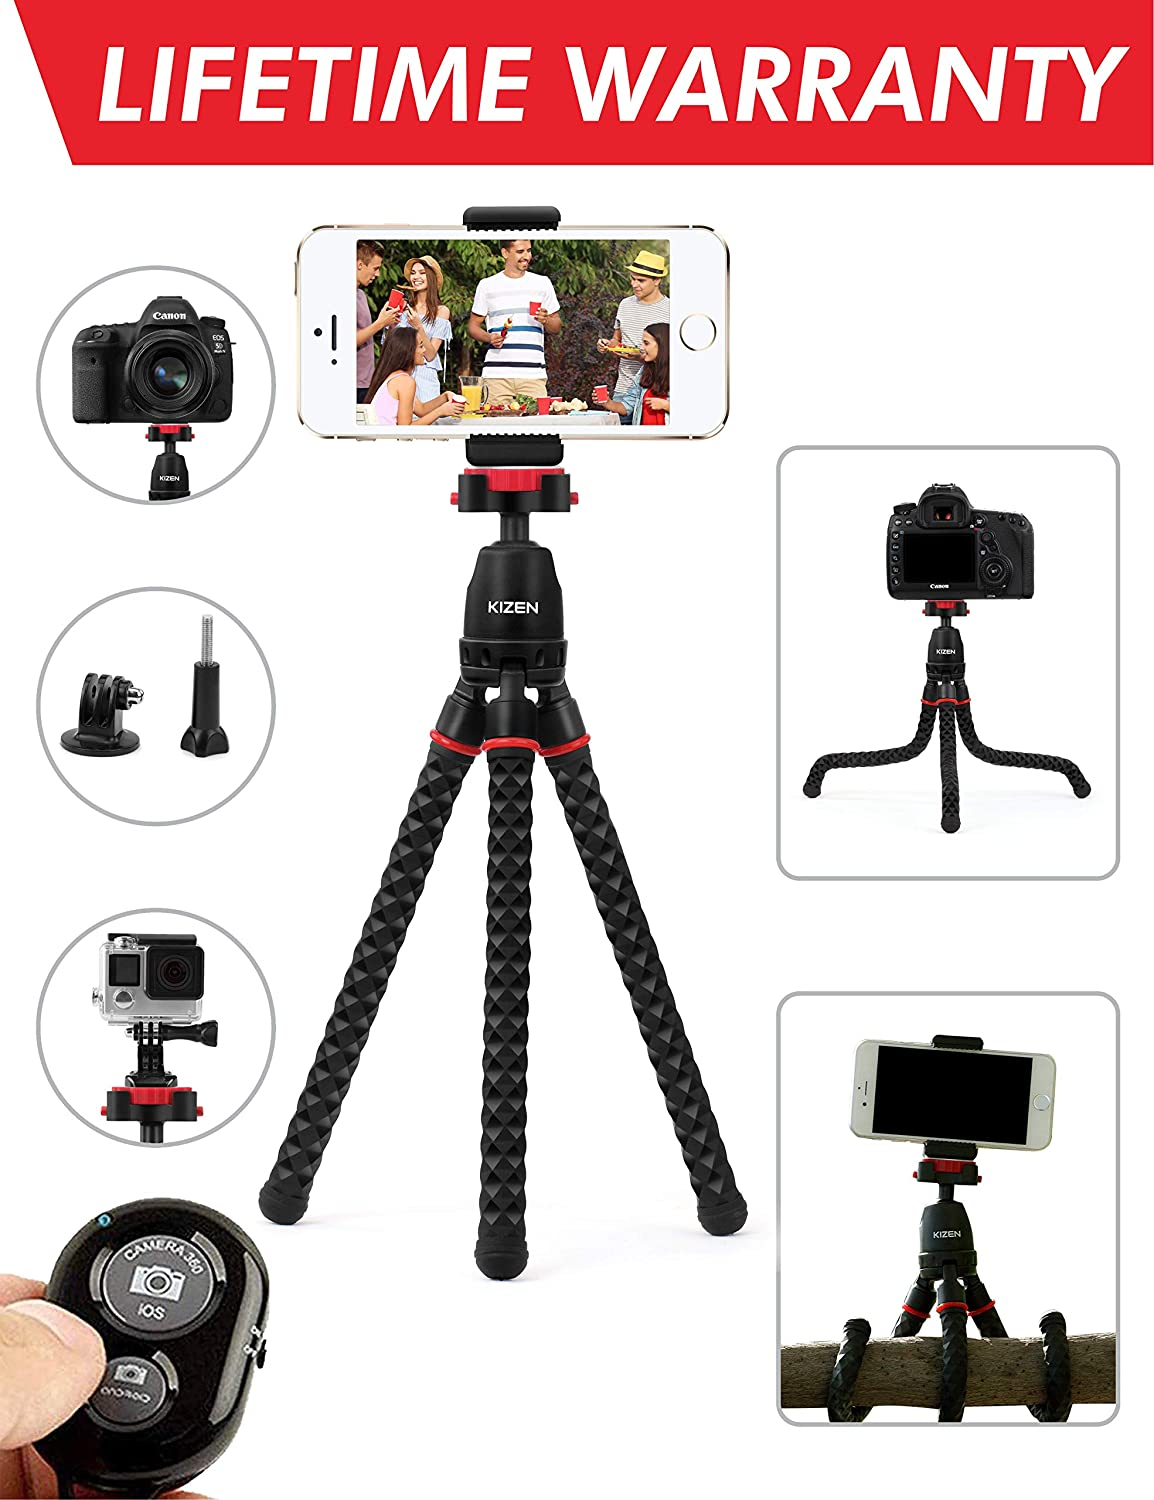 Kizen Phone Tripod with Wireless Remote. Adjustable Camera Stand Holder, Flexible Tripod with Universal Phone Clip. Compatible with iPhone, Android Phone, Camera, Sports Camera GoPro